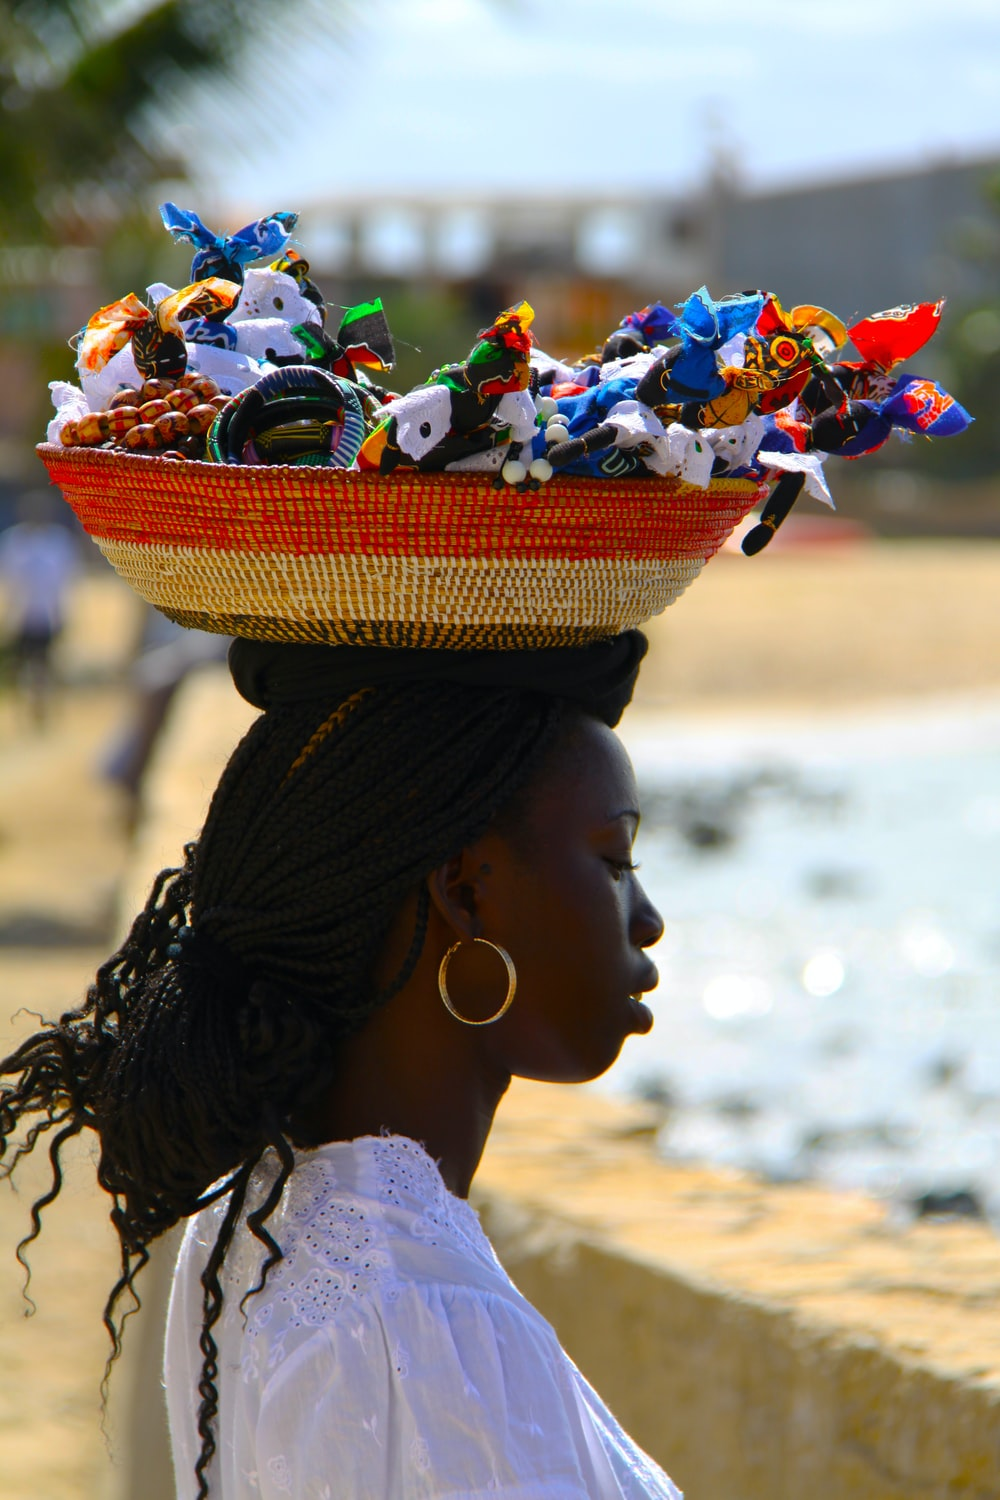 man with red and gray basket on top of her head filled with assorted dolls